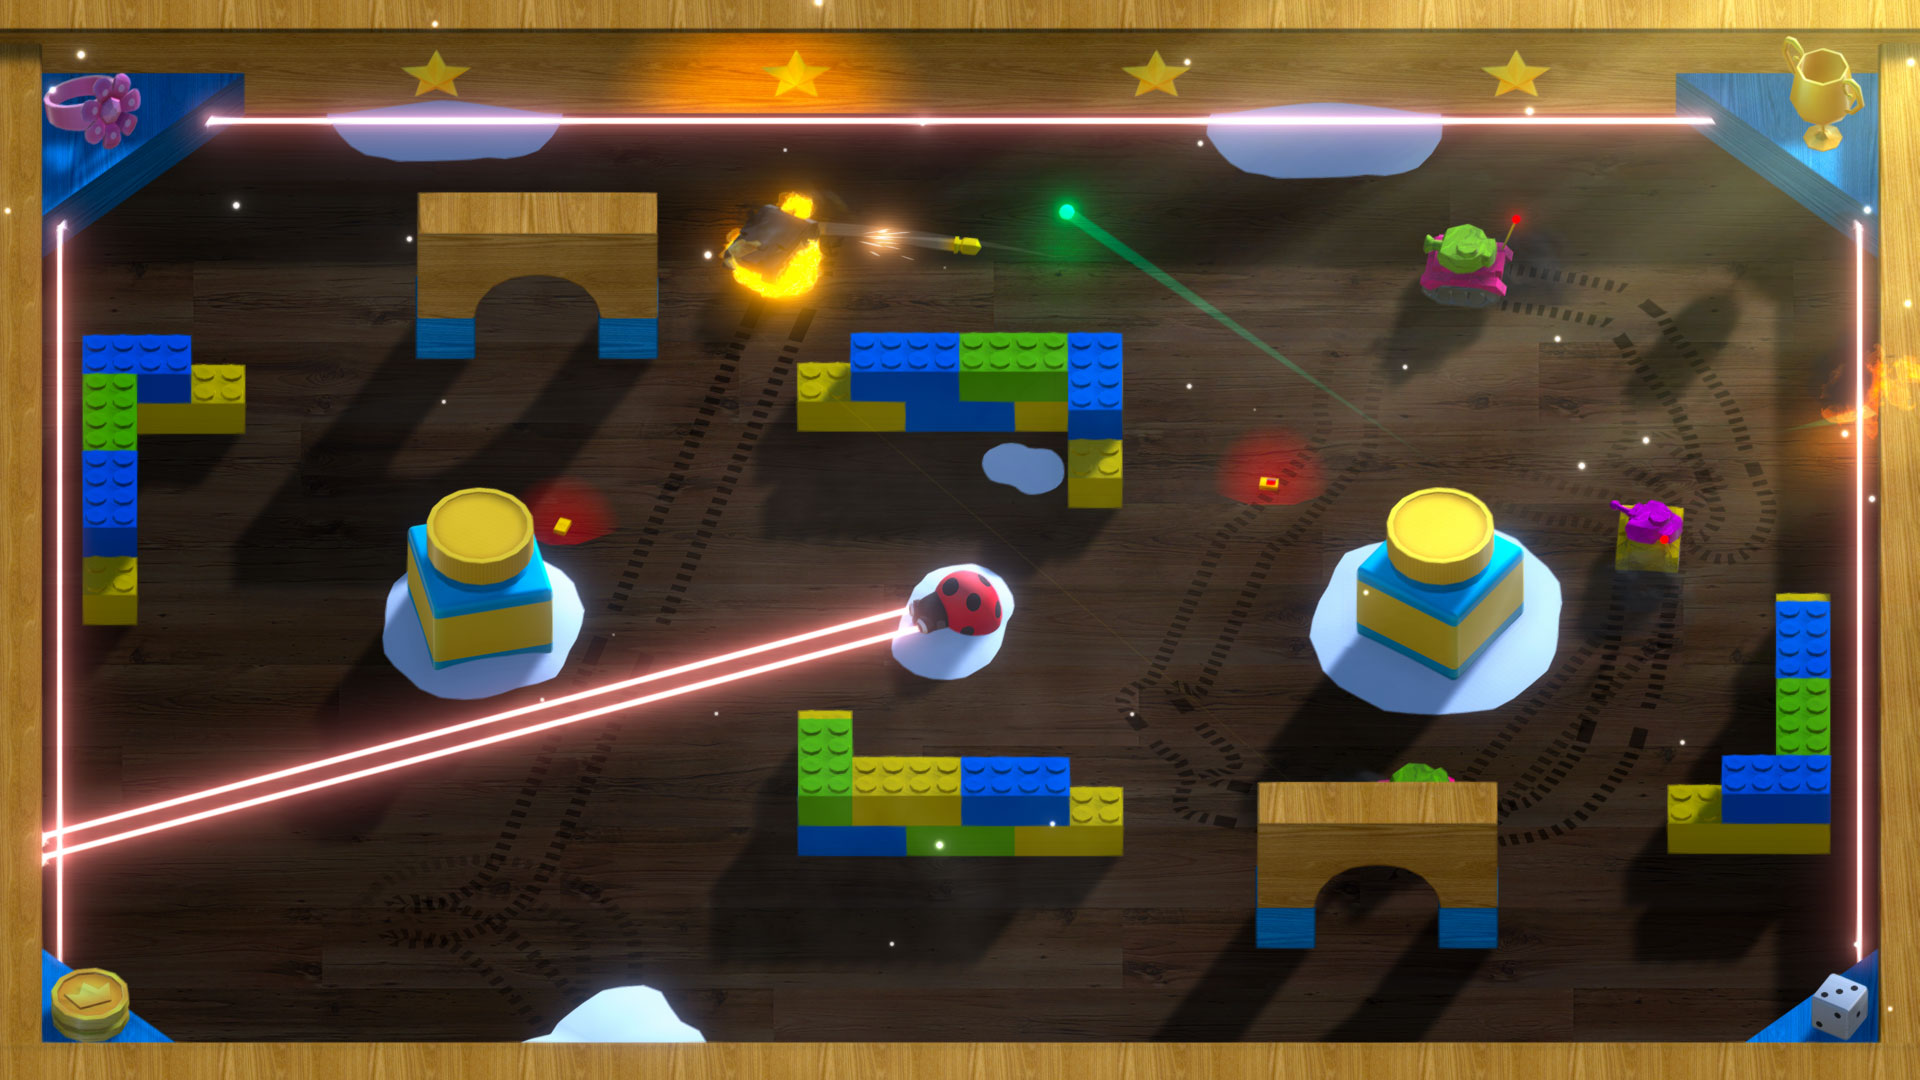 Action, arcade, Attack of the Toy Tanks, Attack of the Toy Tanks Review, multiplayer, Petite Games, PS4, PS4 Review, Ratalaika Games, Rating 6/10